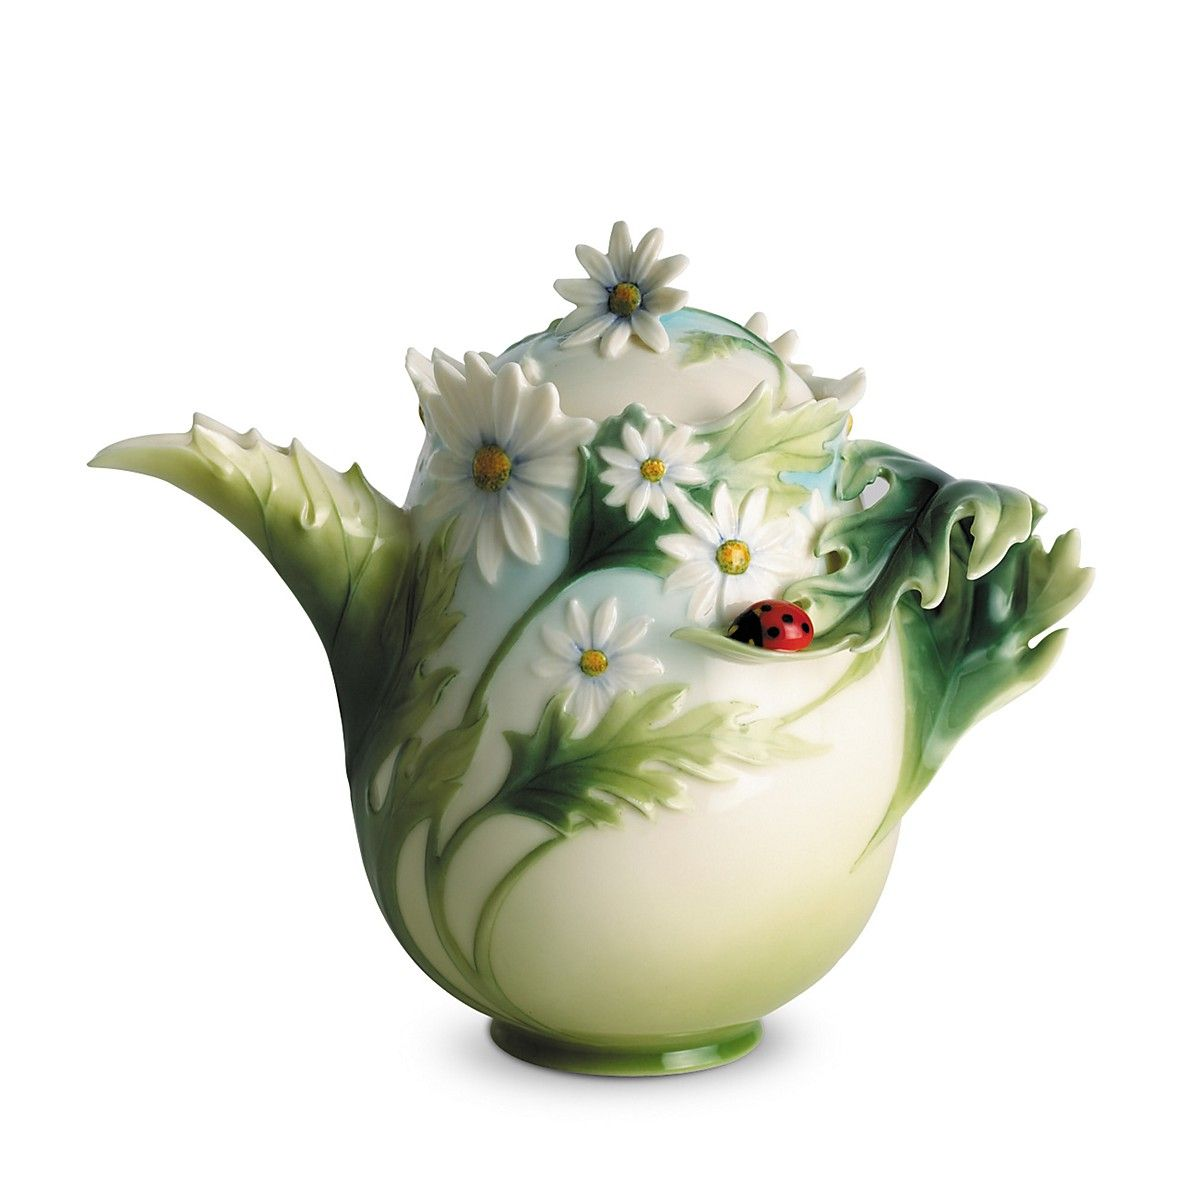 "Franz Collection Ladybug Teapot - Bloomingdale's - Porcelain - 7.25"" x 4.25"" x 6.25"". $195.00"